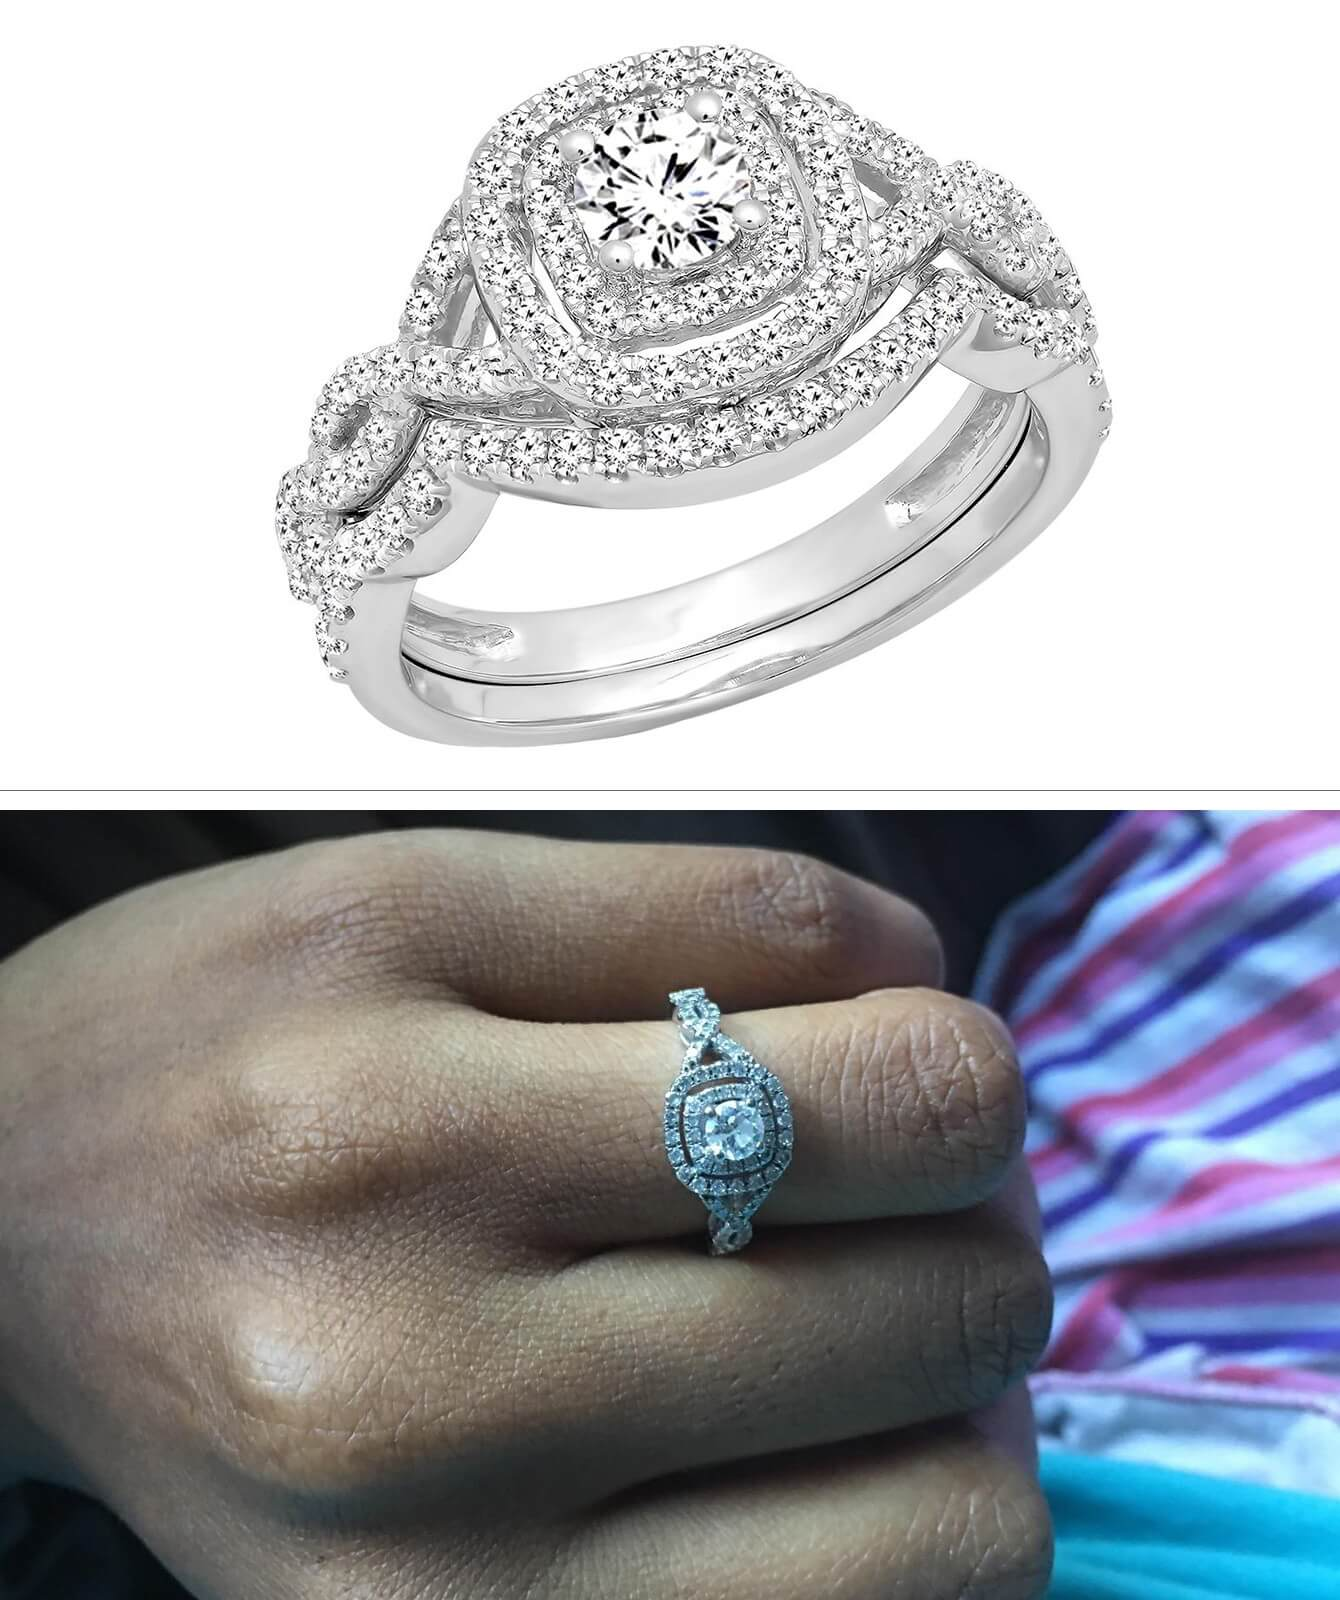 12 Pretty Wedding Rings That Might Actually Take Your Breath Away